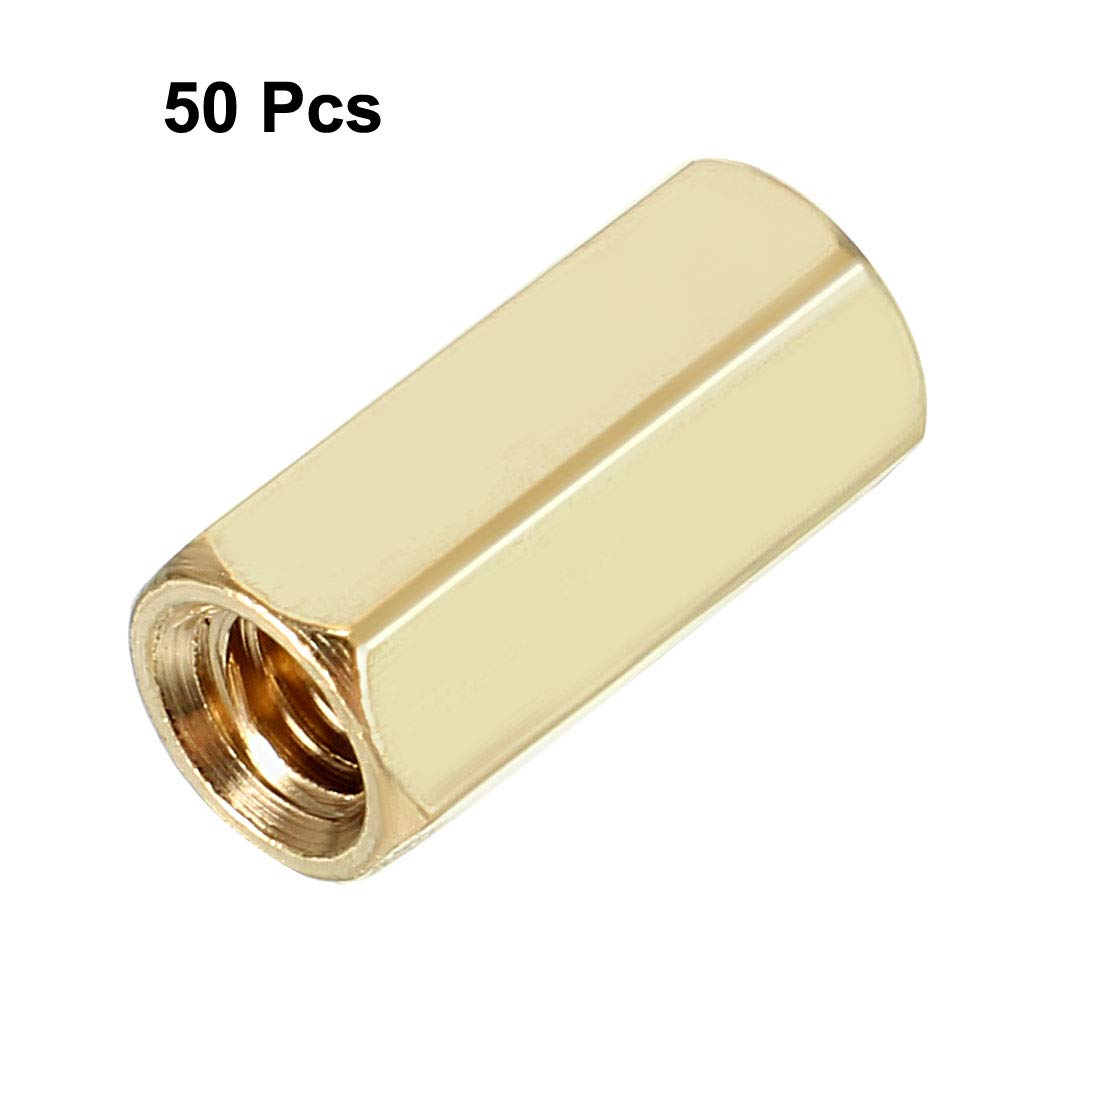 uxcell 150pcs Brass Straight PCB Pillar Female Thread Hex Standoff Spacer M3x5x14mm